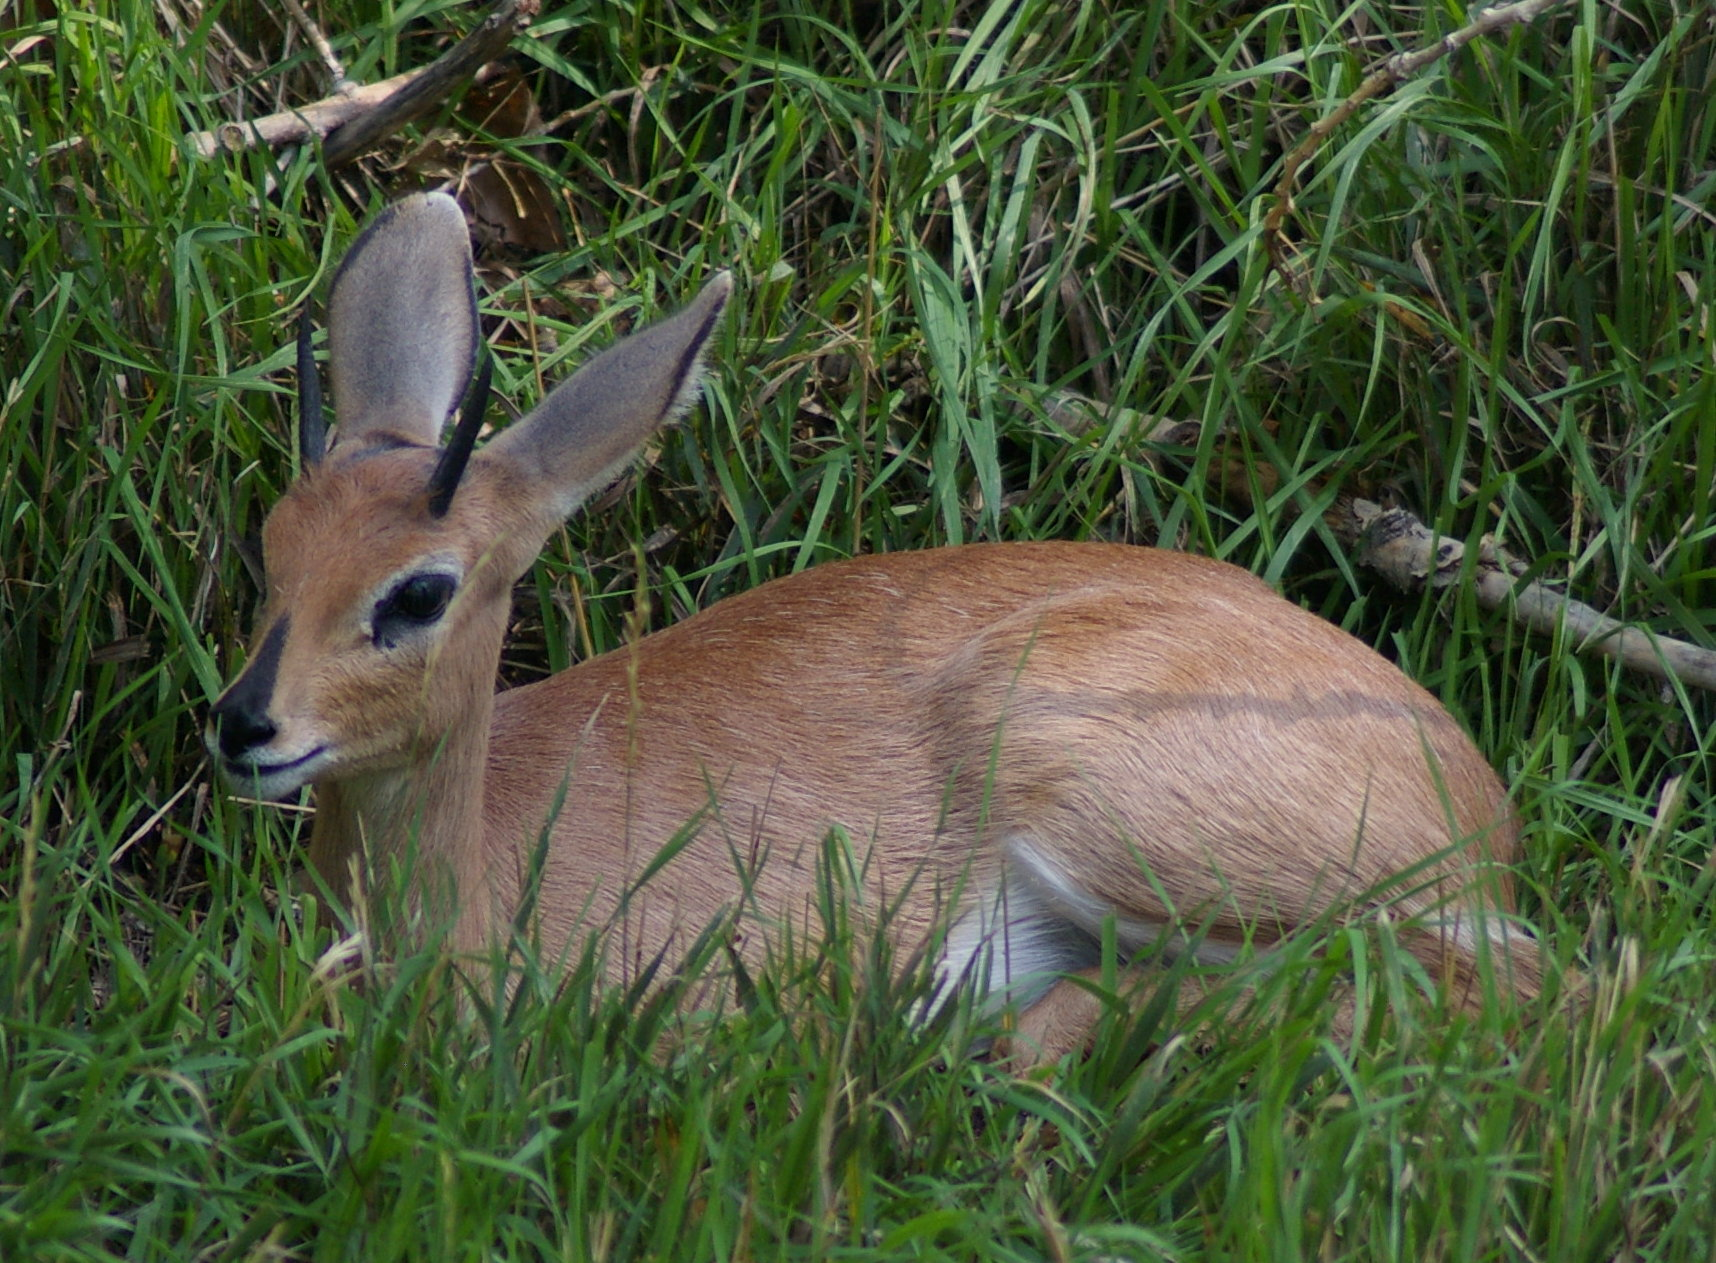 https://i1.wp.com/upload.wikimedia.org/wikipedia/commons/3/33/Steenbok_sitting.jpg